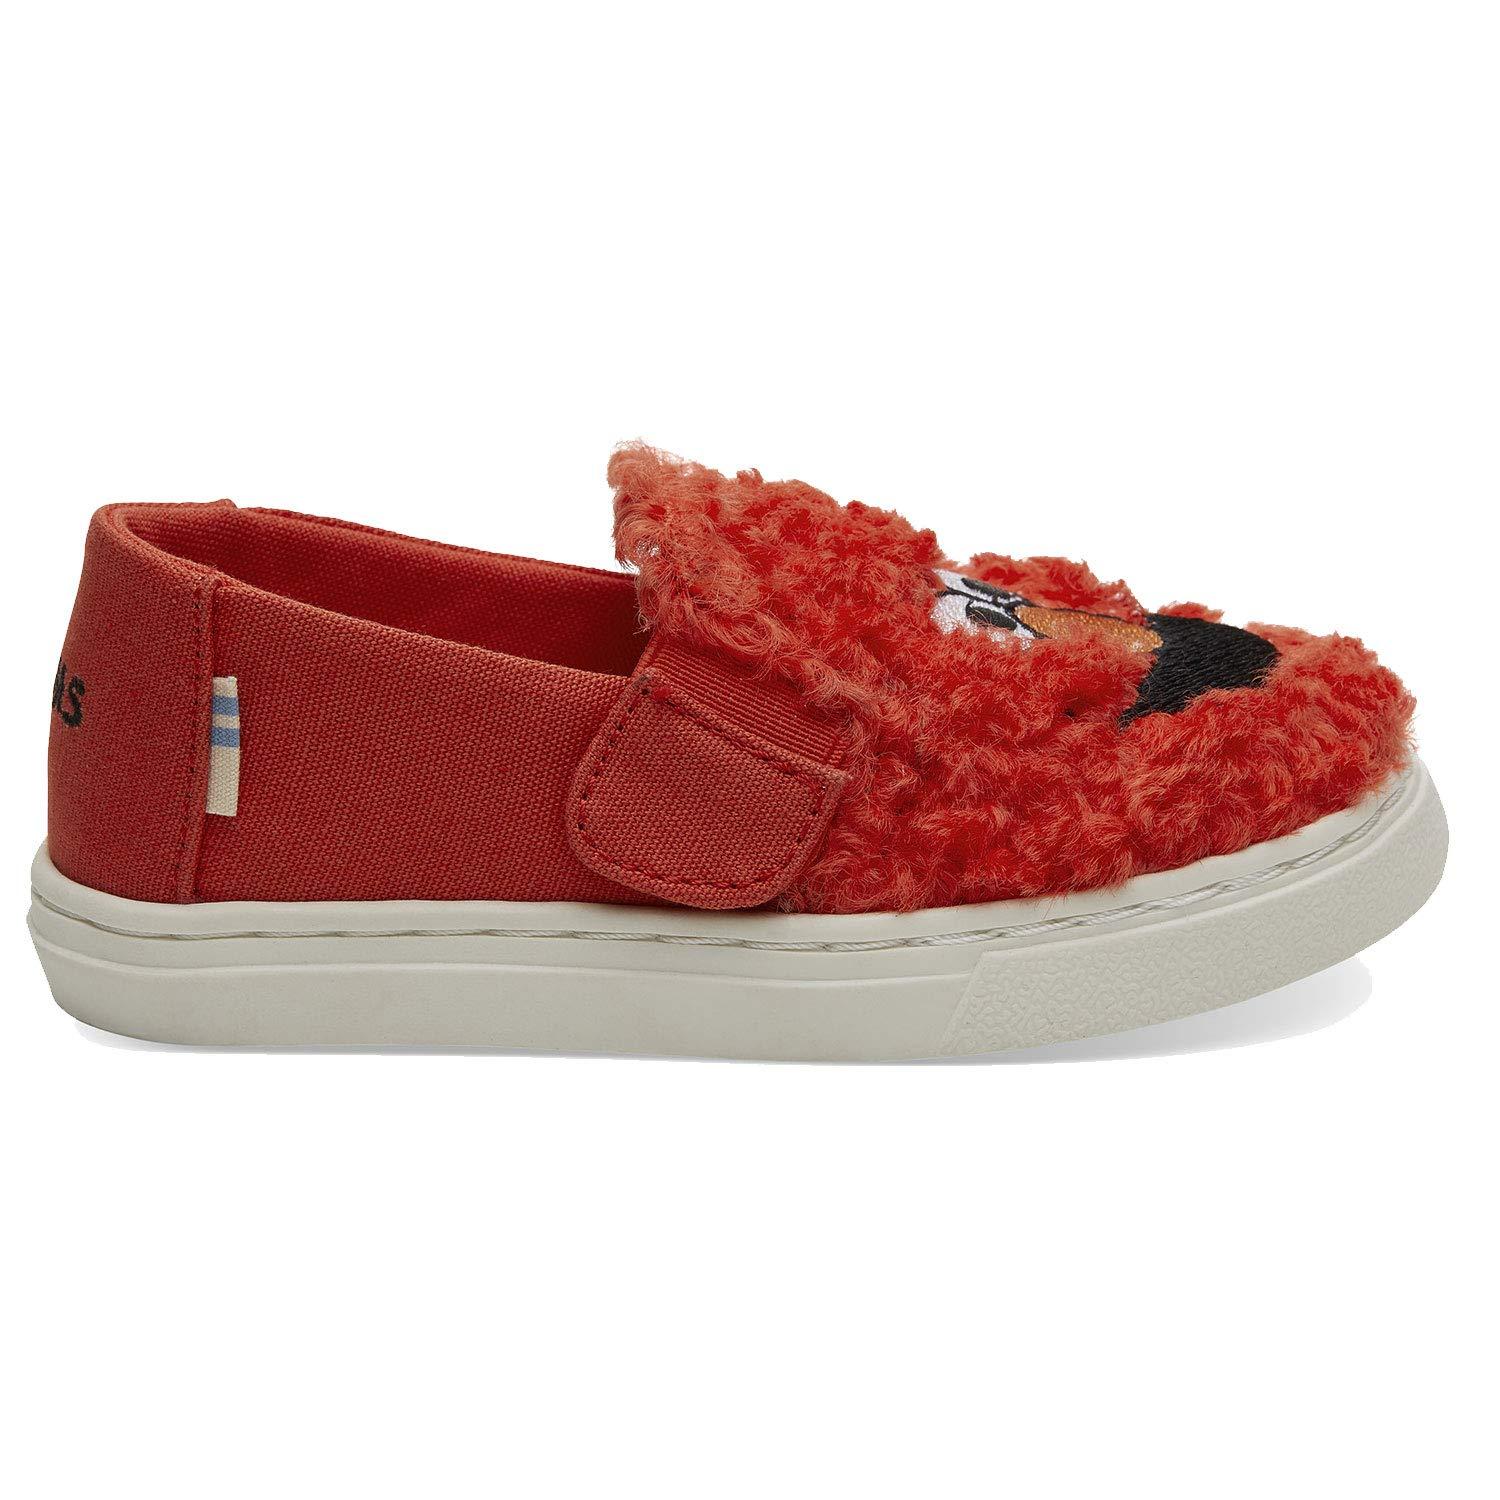 TOMS Sesame Street X Elmo Face Faux Shearling Tiny Luca Slip-Ons 10013649 (Size: 9) Red by TOMS (Image #1)